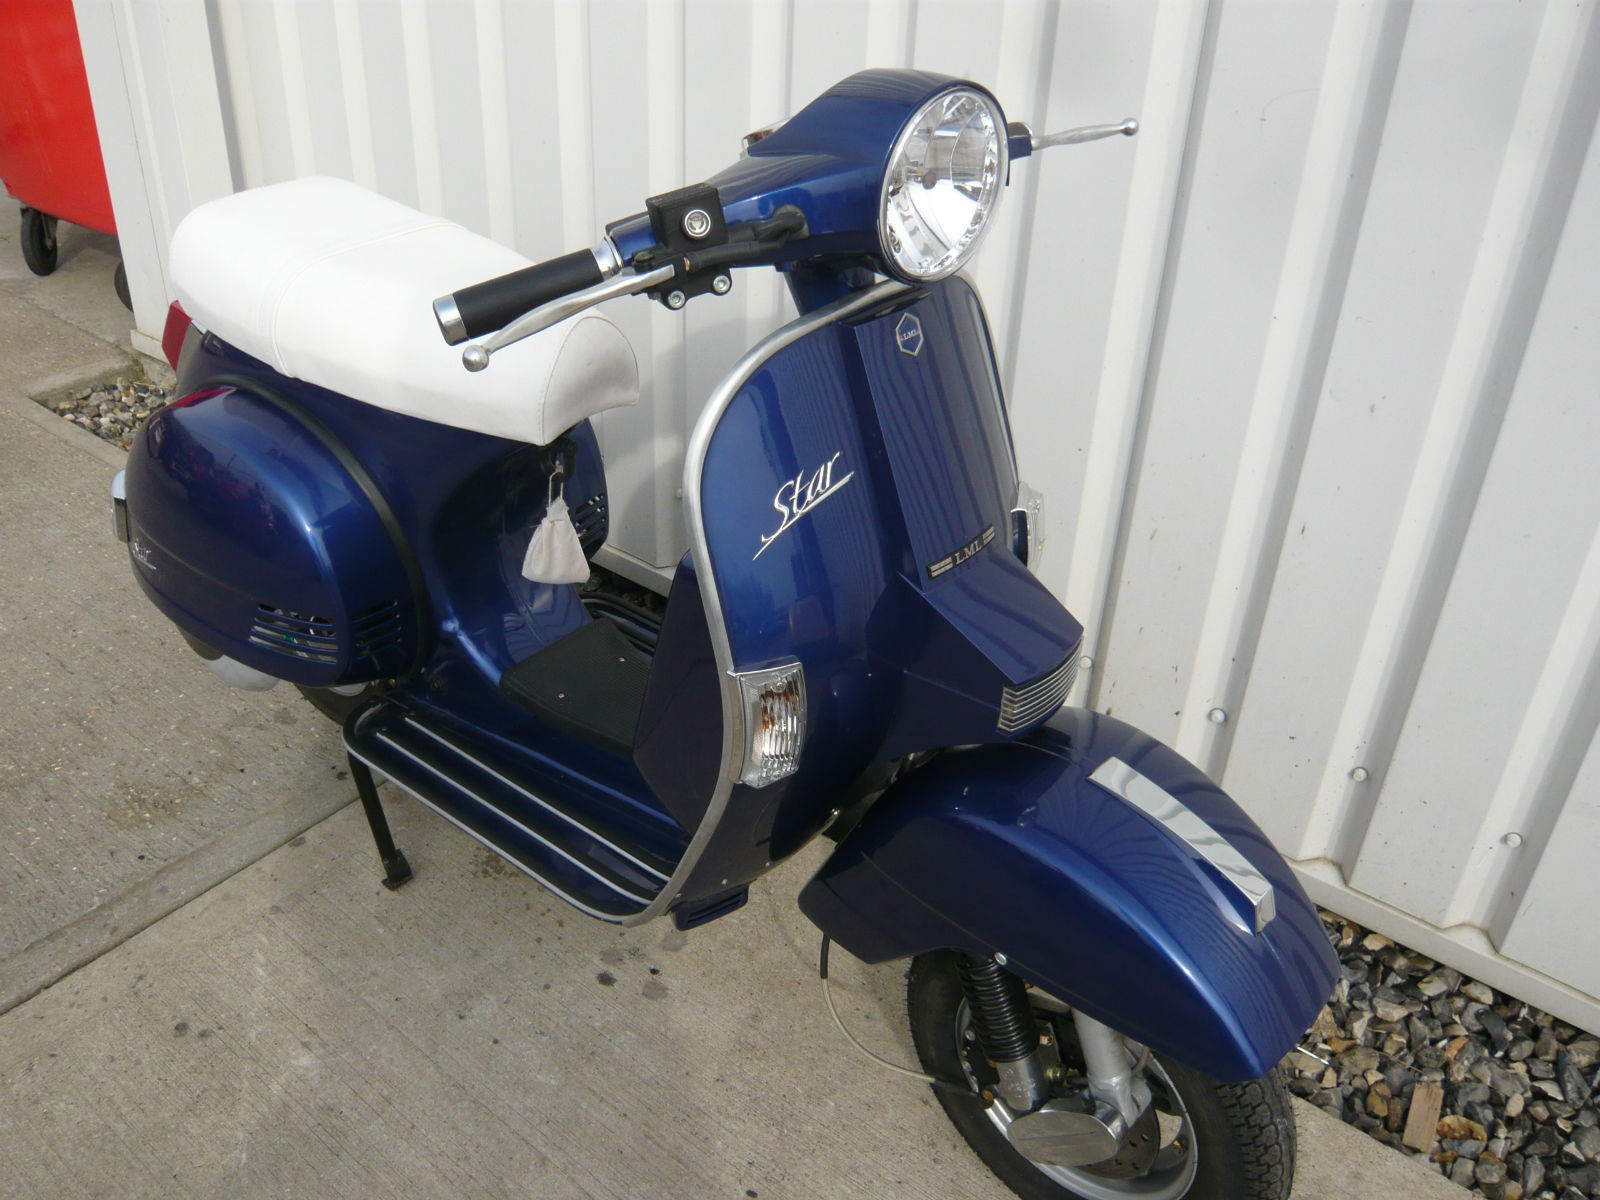 lml star 125 automatic vespa lambretta 2014 retro classic. Black Bedroom Furniture Sets. Home Design Ideas